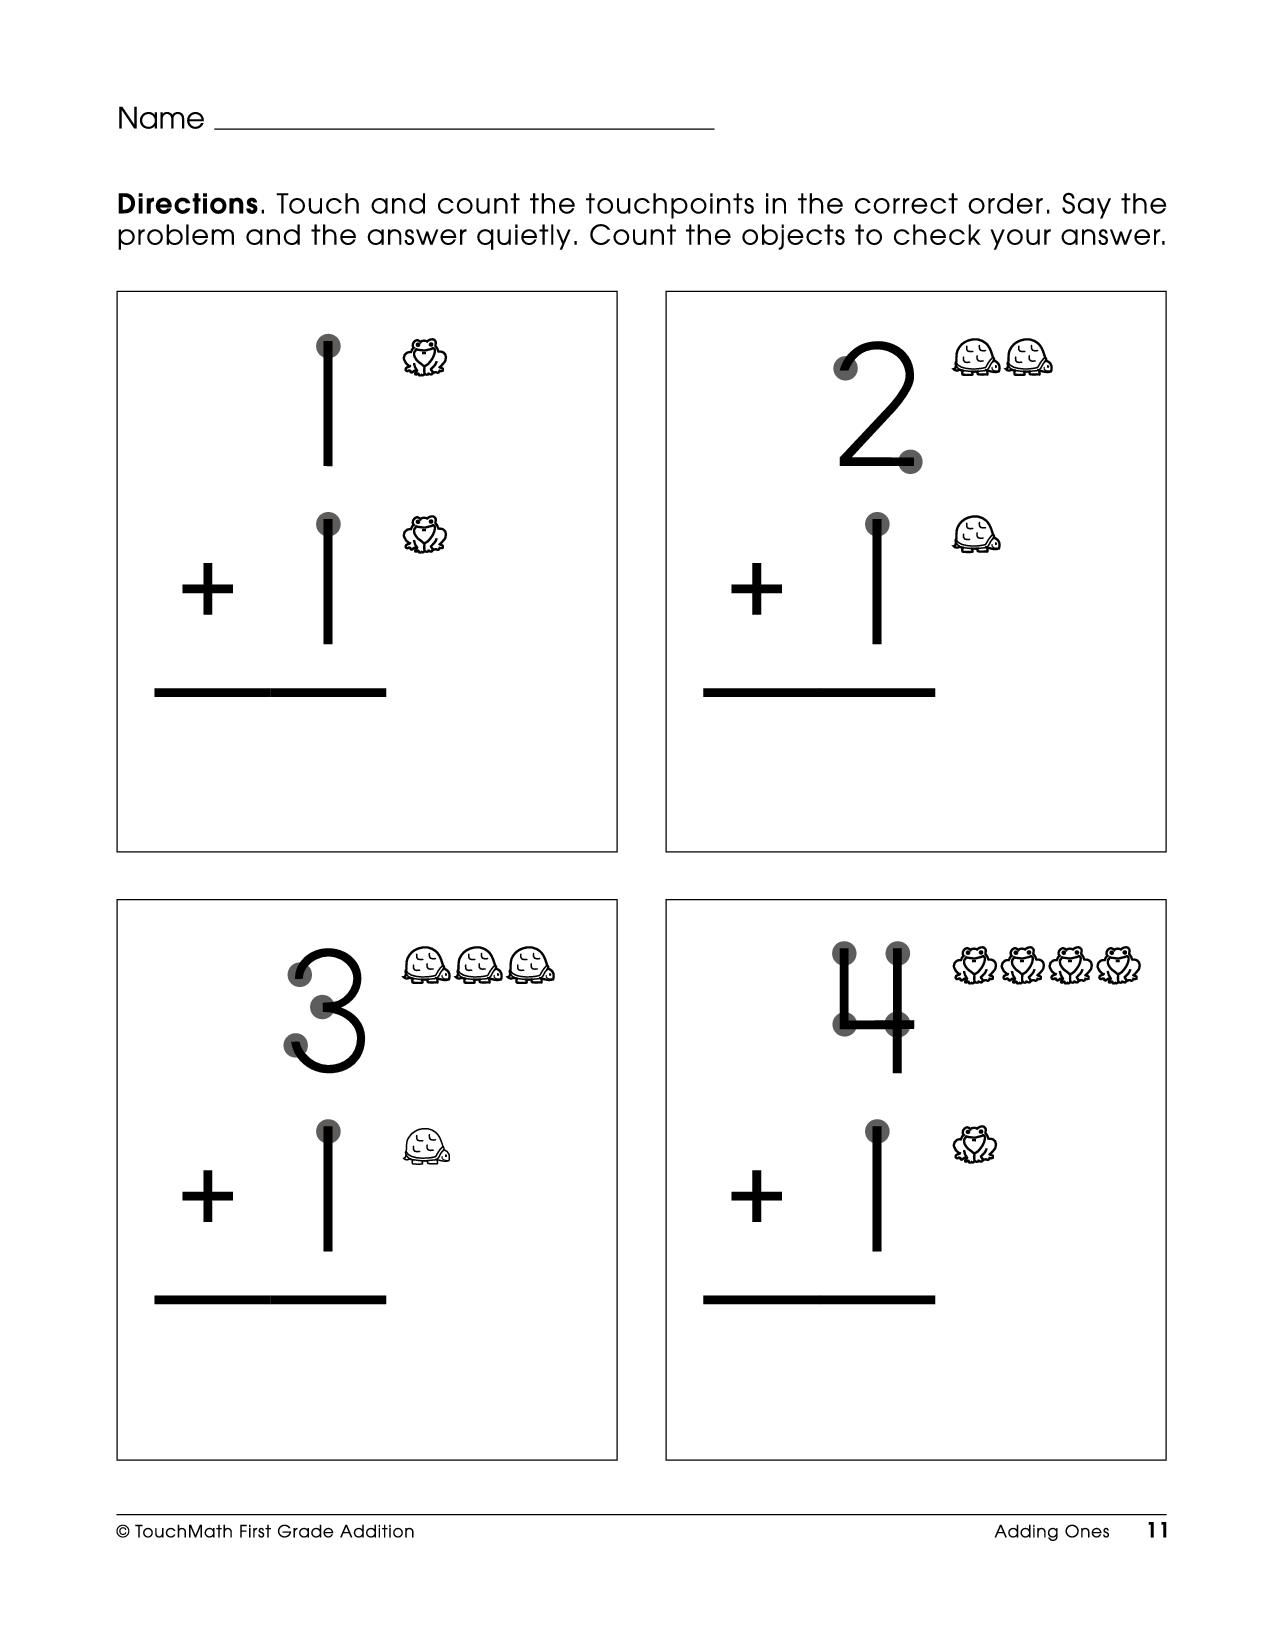 Free Printable Touchpoint Math Worksheets In